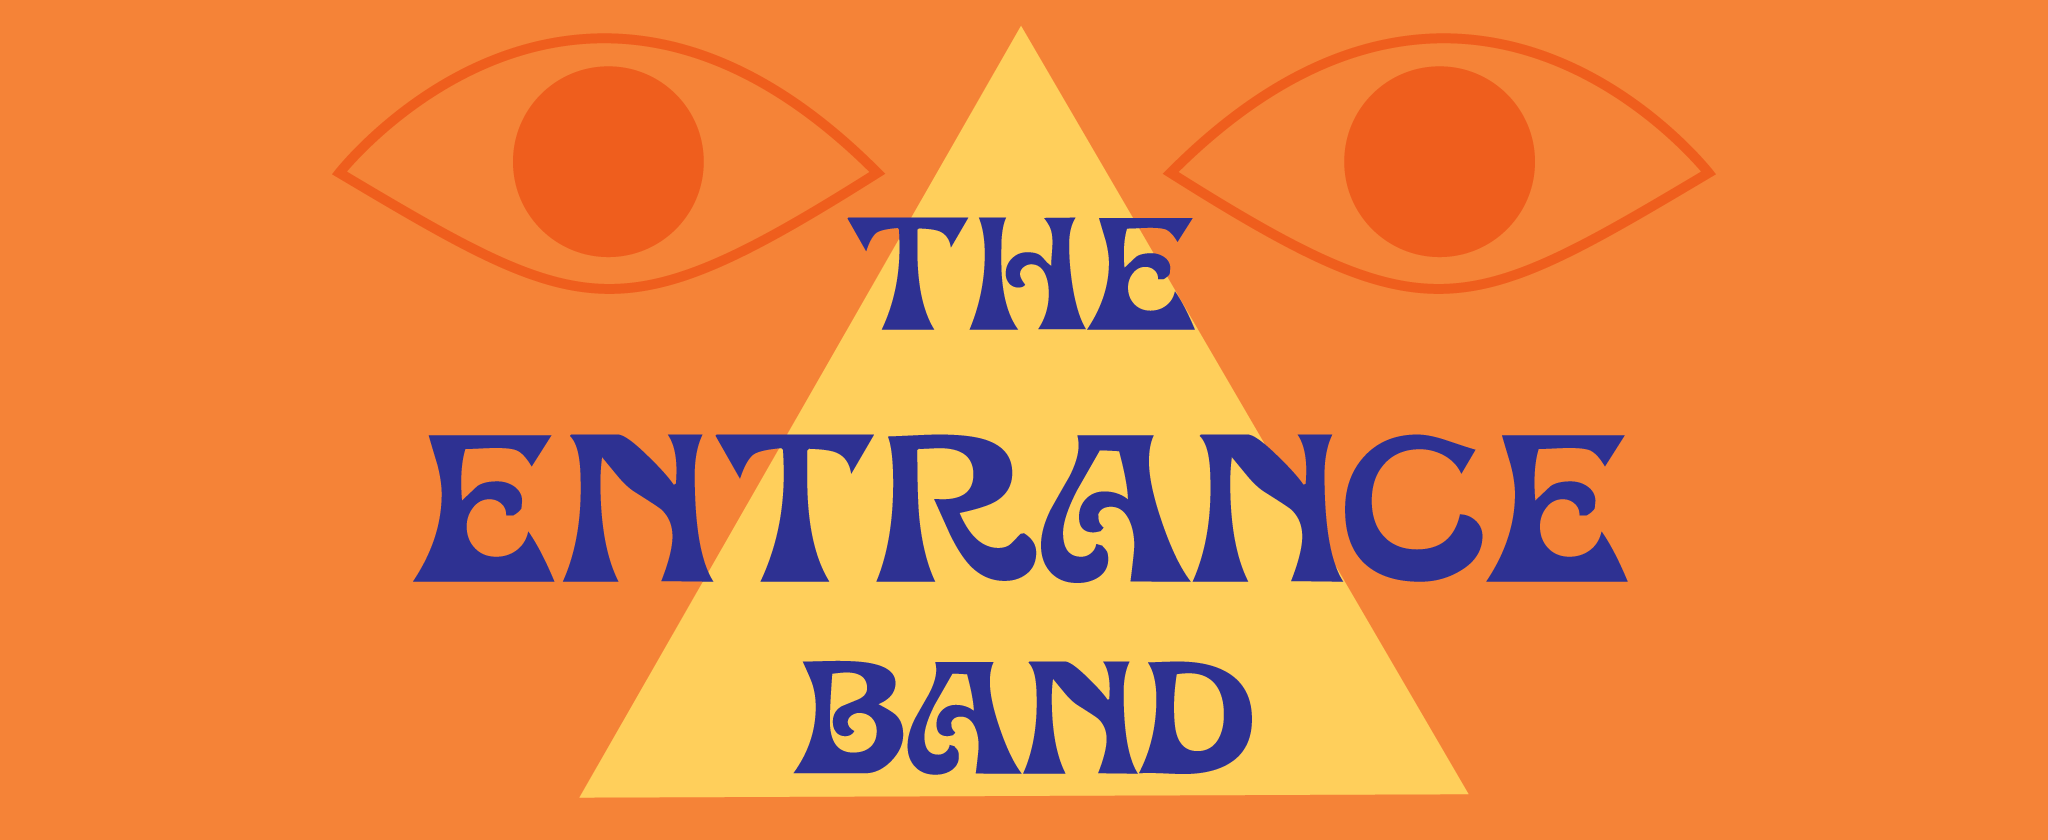 the-entrance-band2